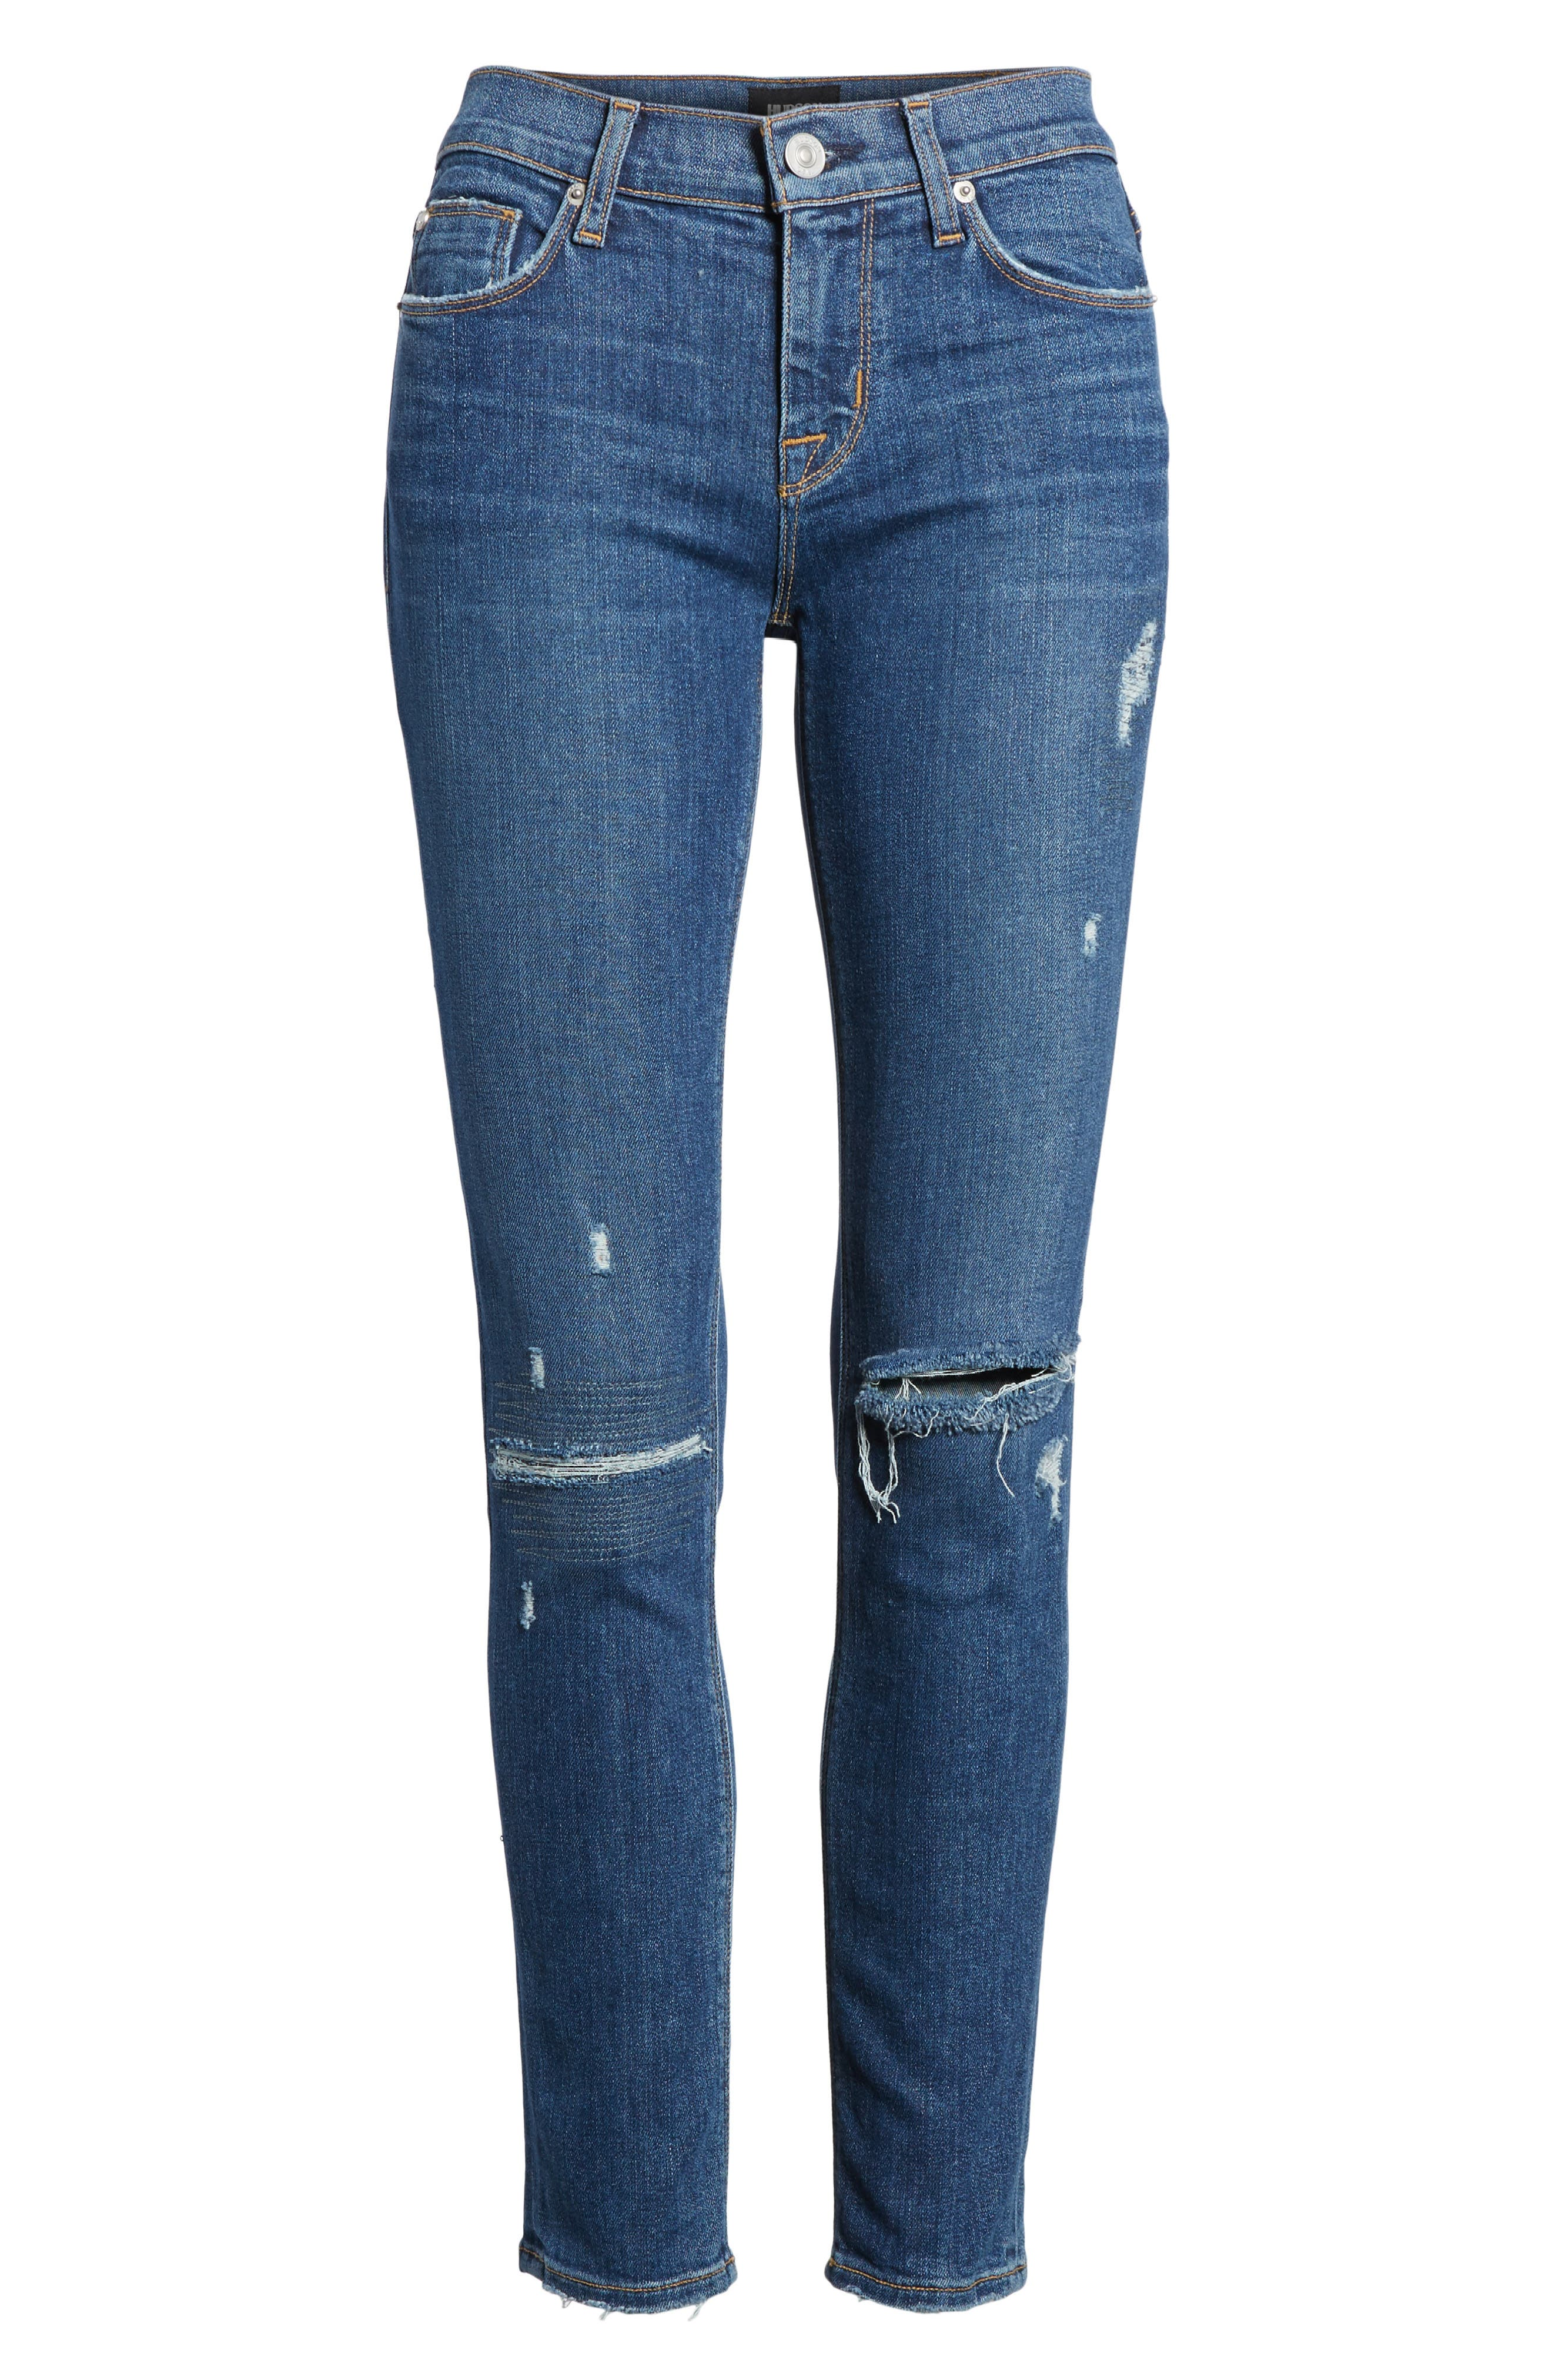 Tally Ankle Skinny Jeans,                             Alternate thumbnail 6, color,                             423